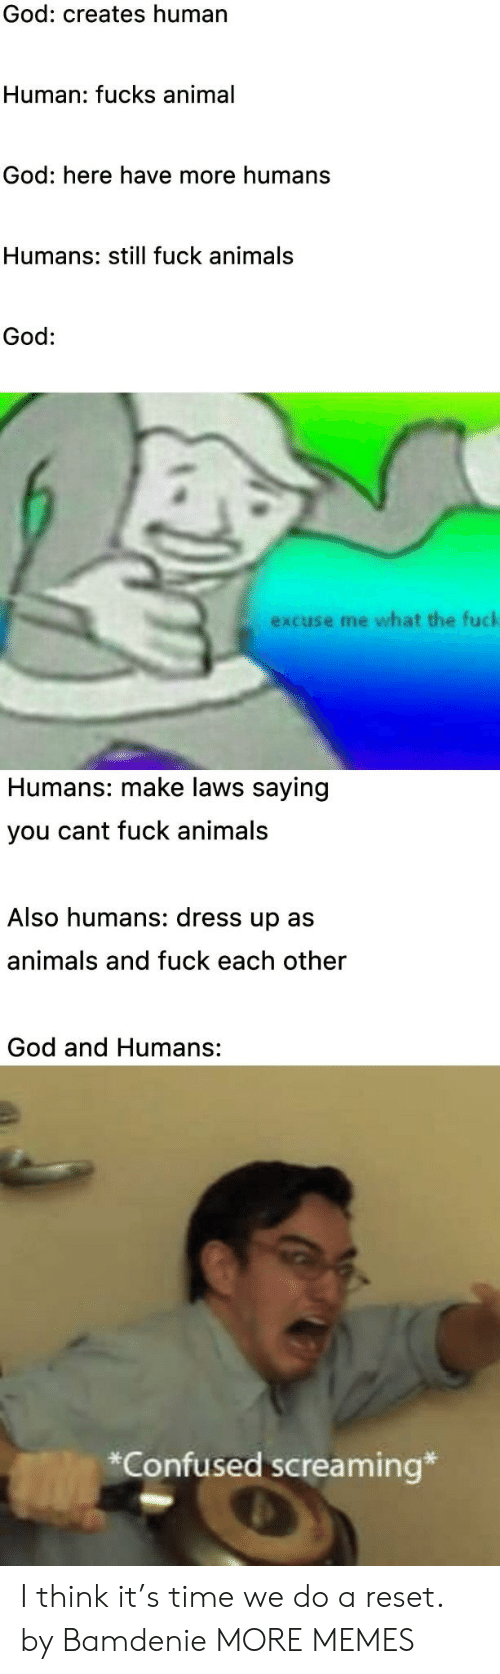 reset: God: creates human  Human: fucks animal  God: here have more humans  Humans: still fuck animals  God:  excuse me what the fuck  Humans: make laws saying  you cant fuck animals  Also humans: dress up as  animals and fuck each other  God and Humans:  *Confused screaming* I think it's time we do a reset. by Bamdenie MORE MEMES